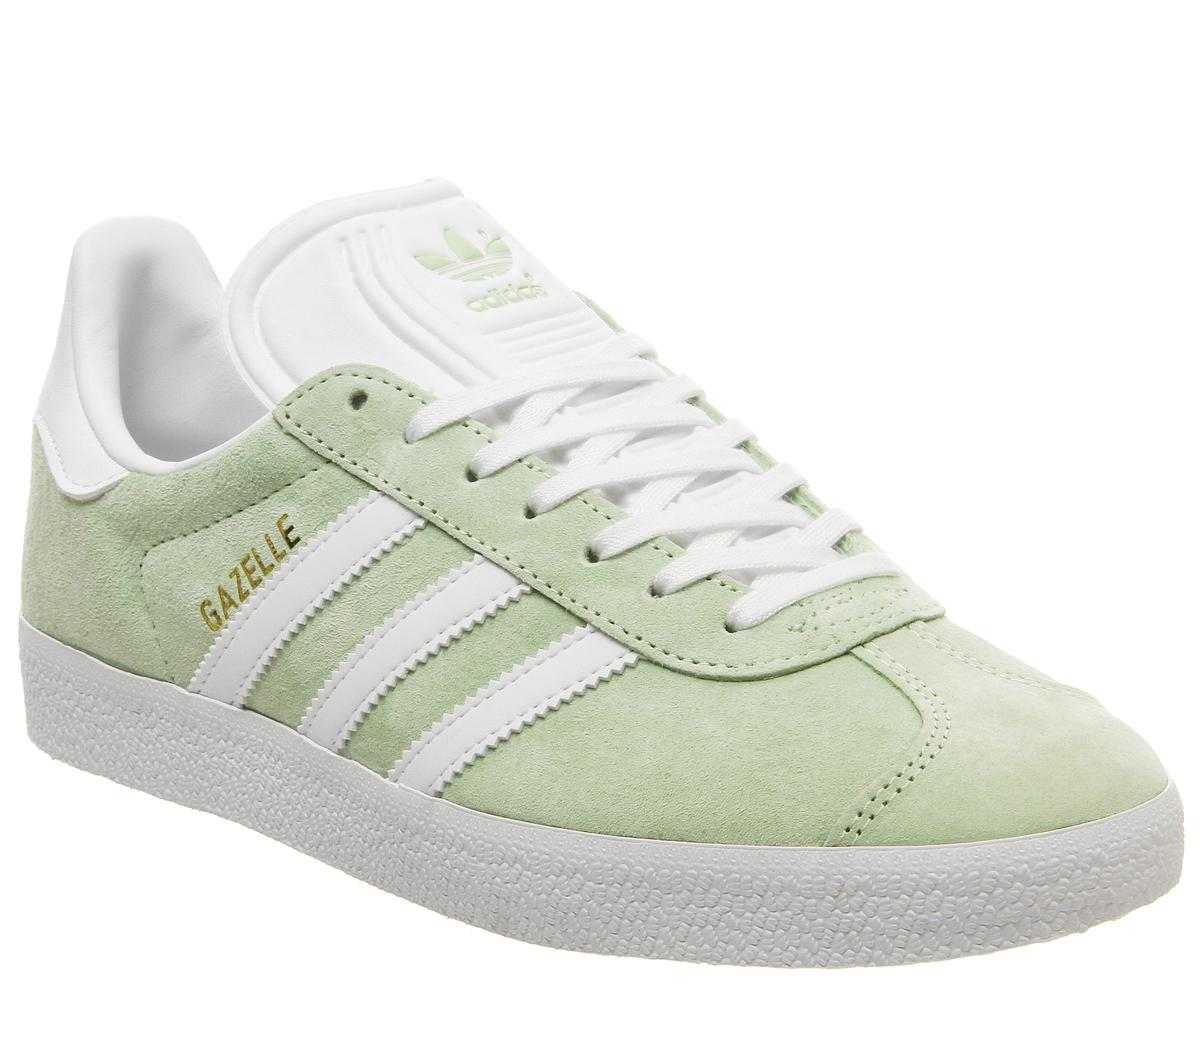 adidas Gazelle Trainers Glow Green